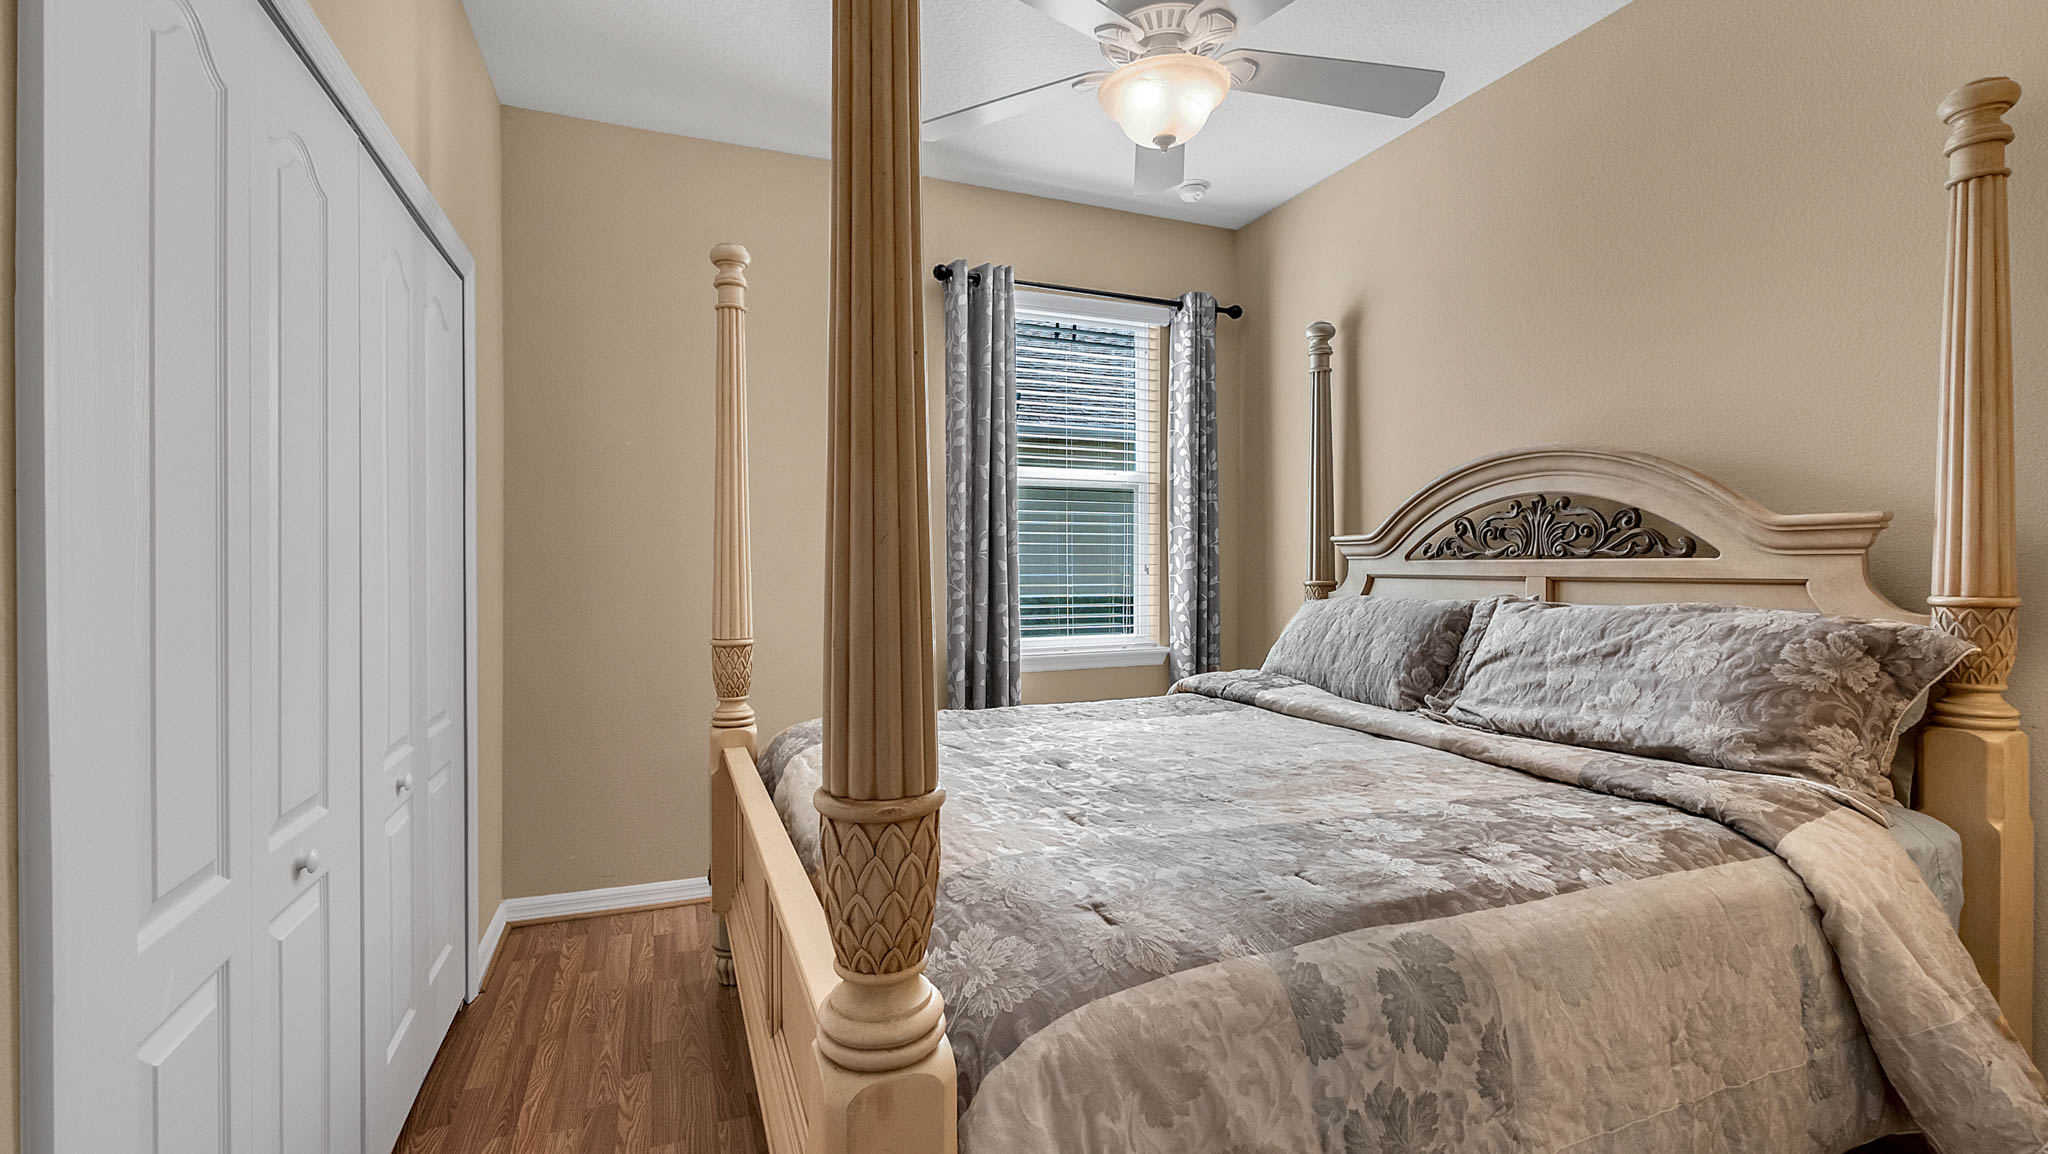 105-W-Cherry-Pl--DeLand--FL-32724----16---Bedroom.jpg